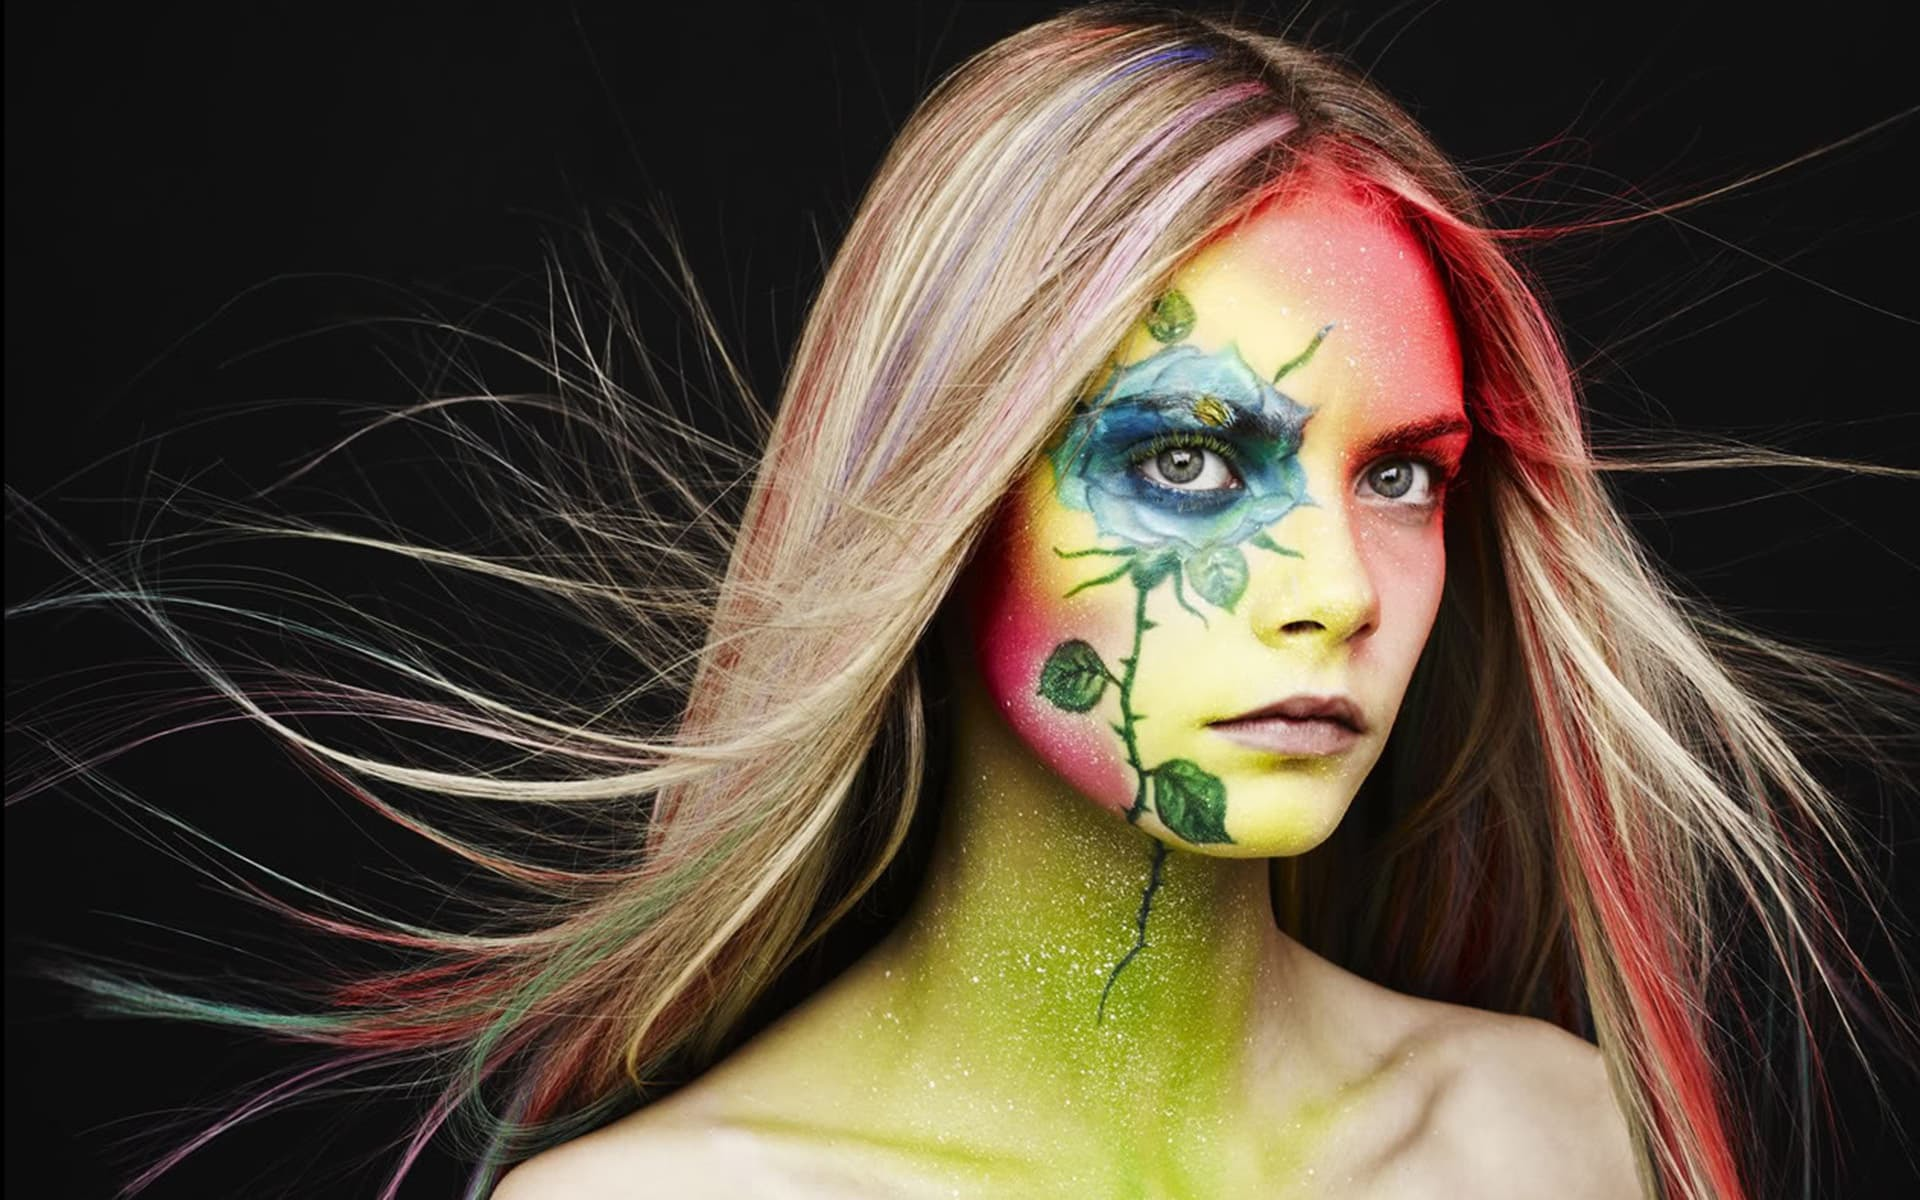 cara delevingne wallpapers images photos pictures backgrounds